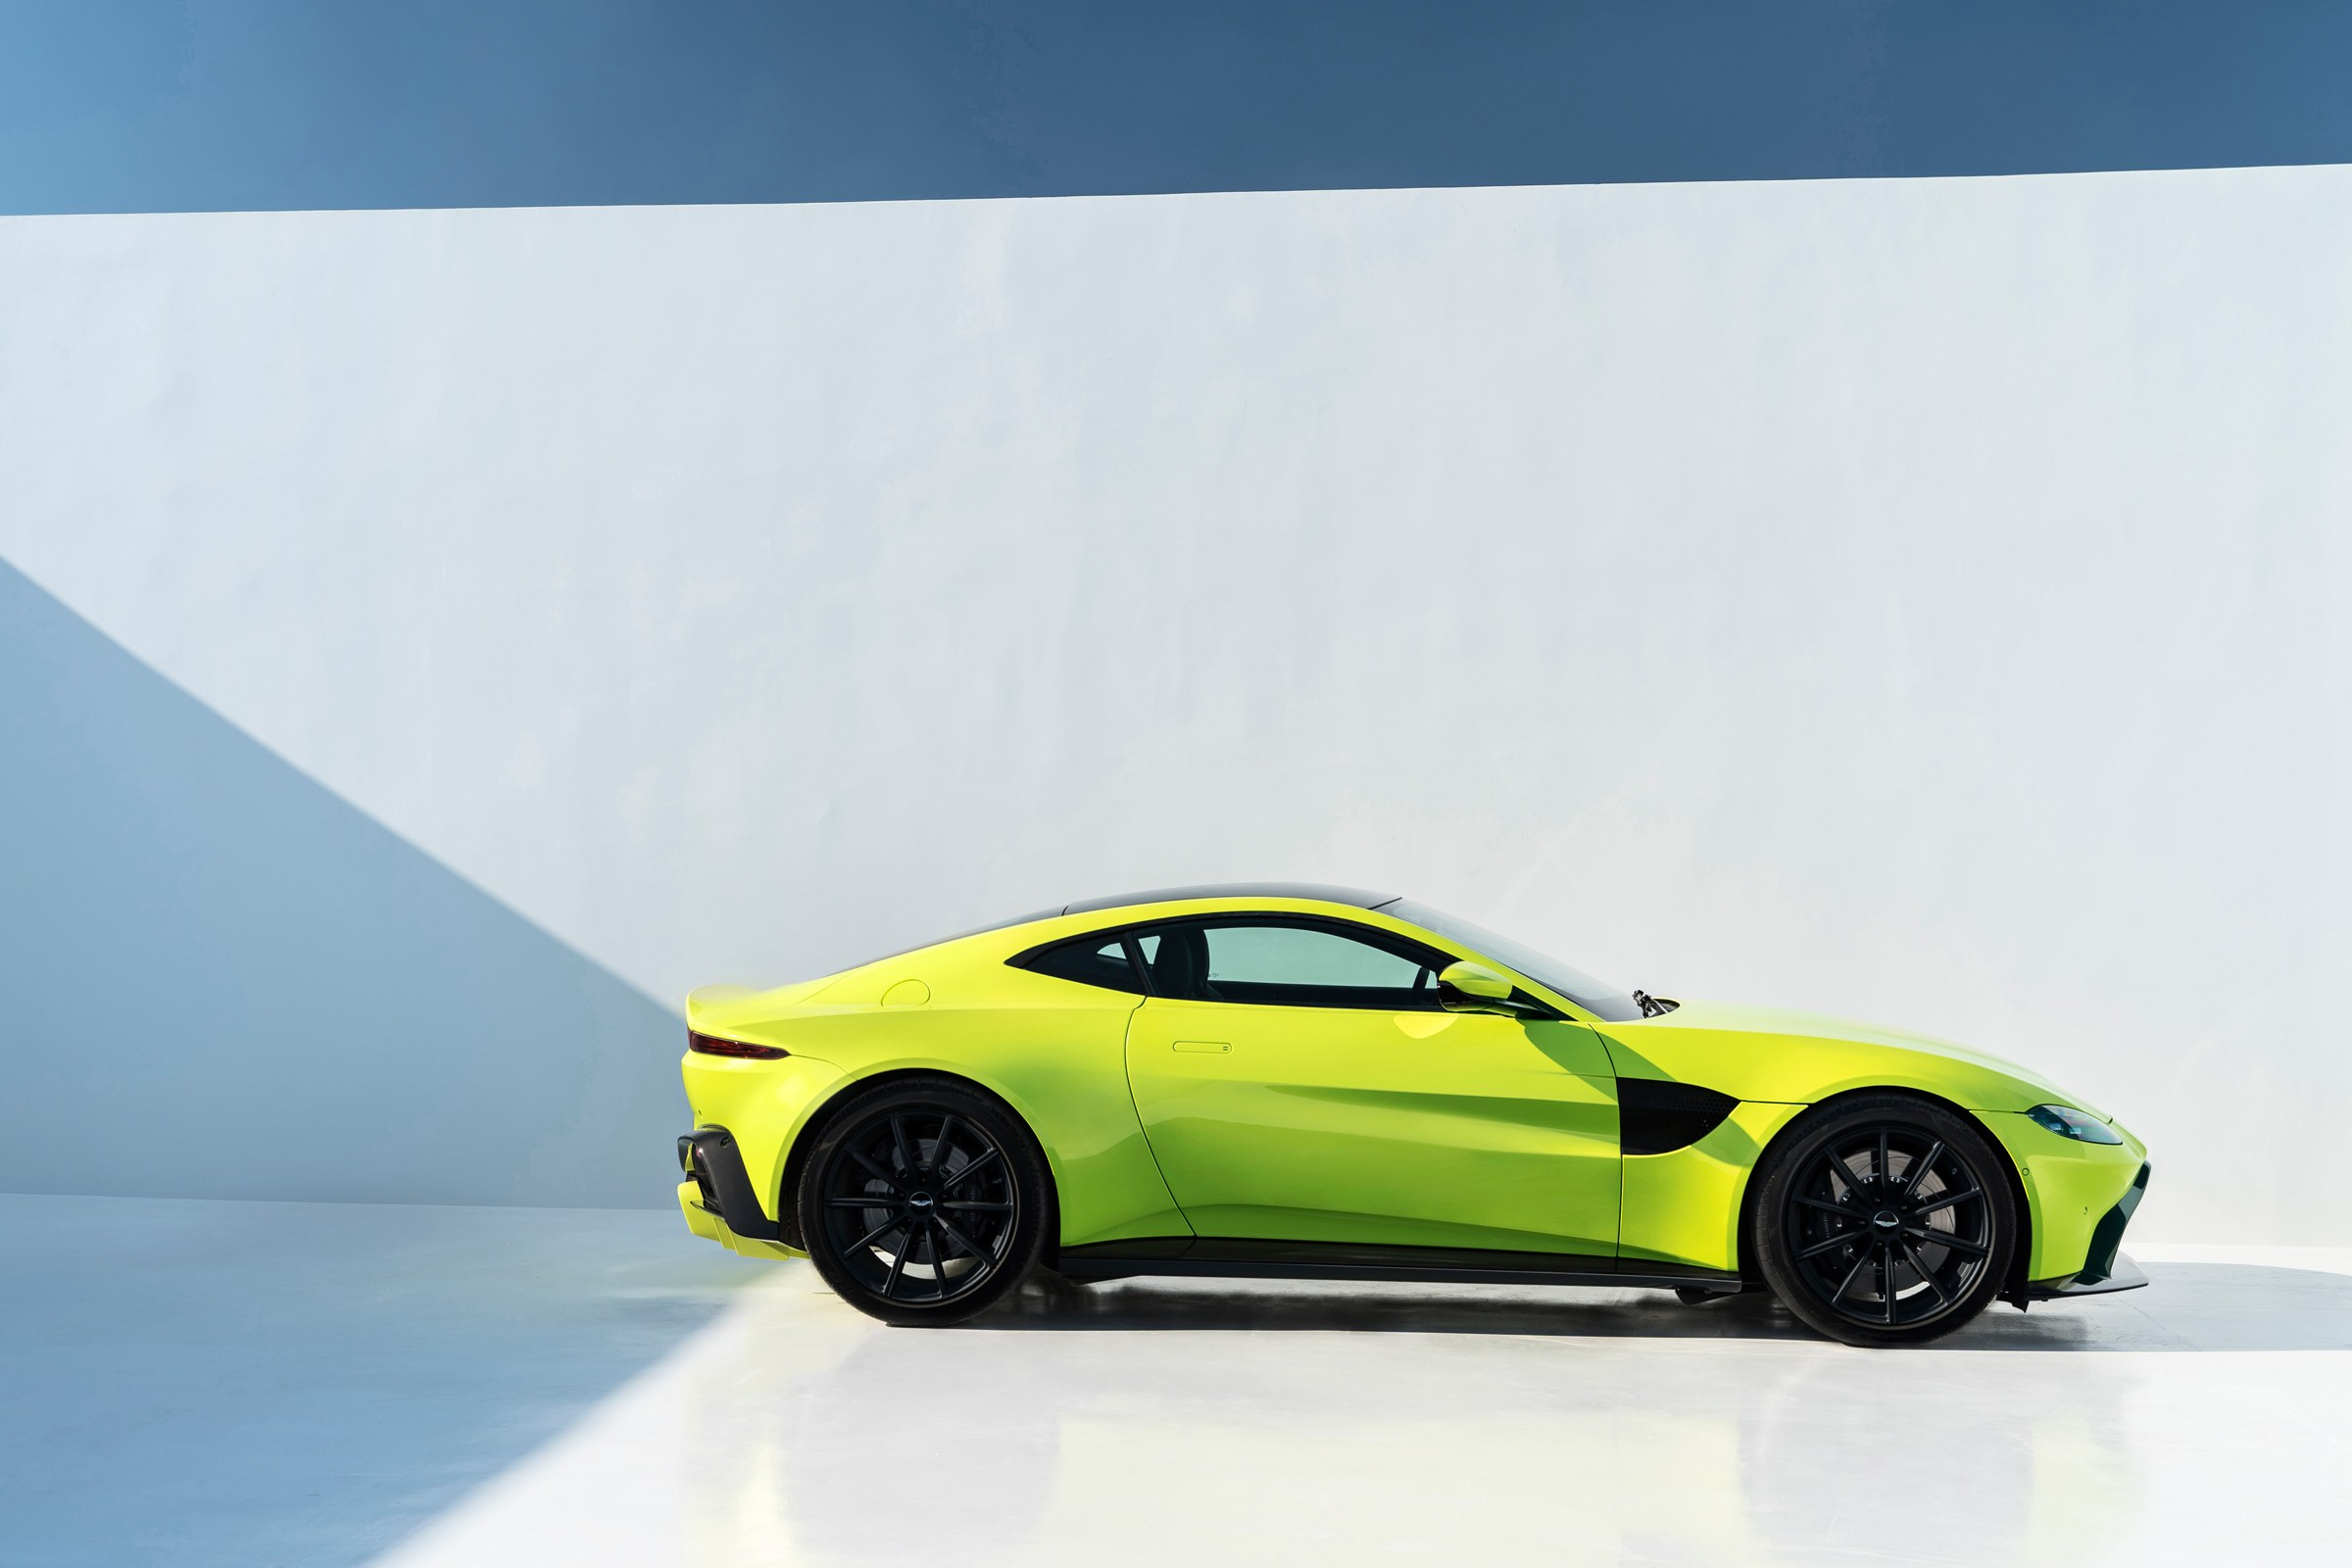 Aston Martin Unveils Its New, $150,000 Vantage Sports Car | WIRED